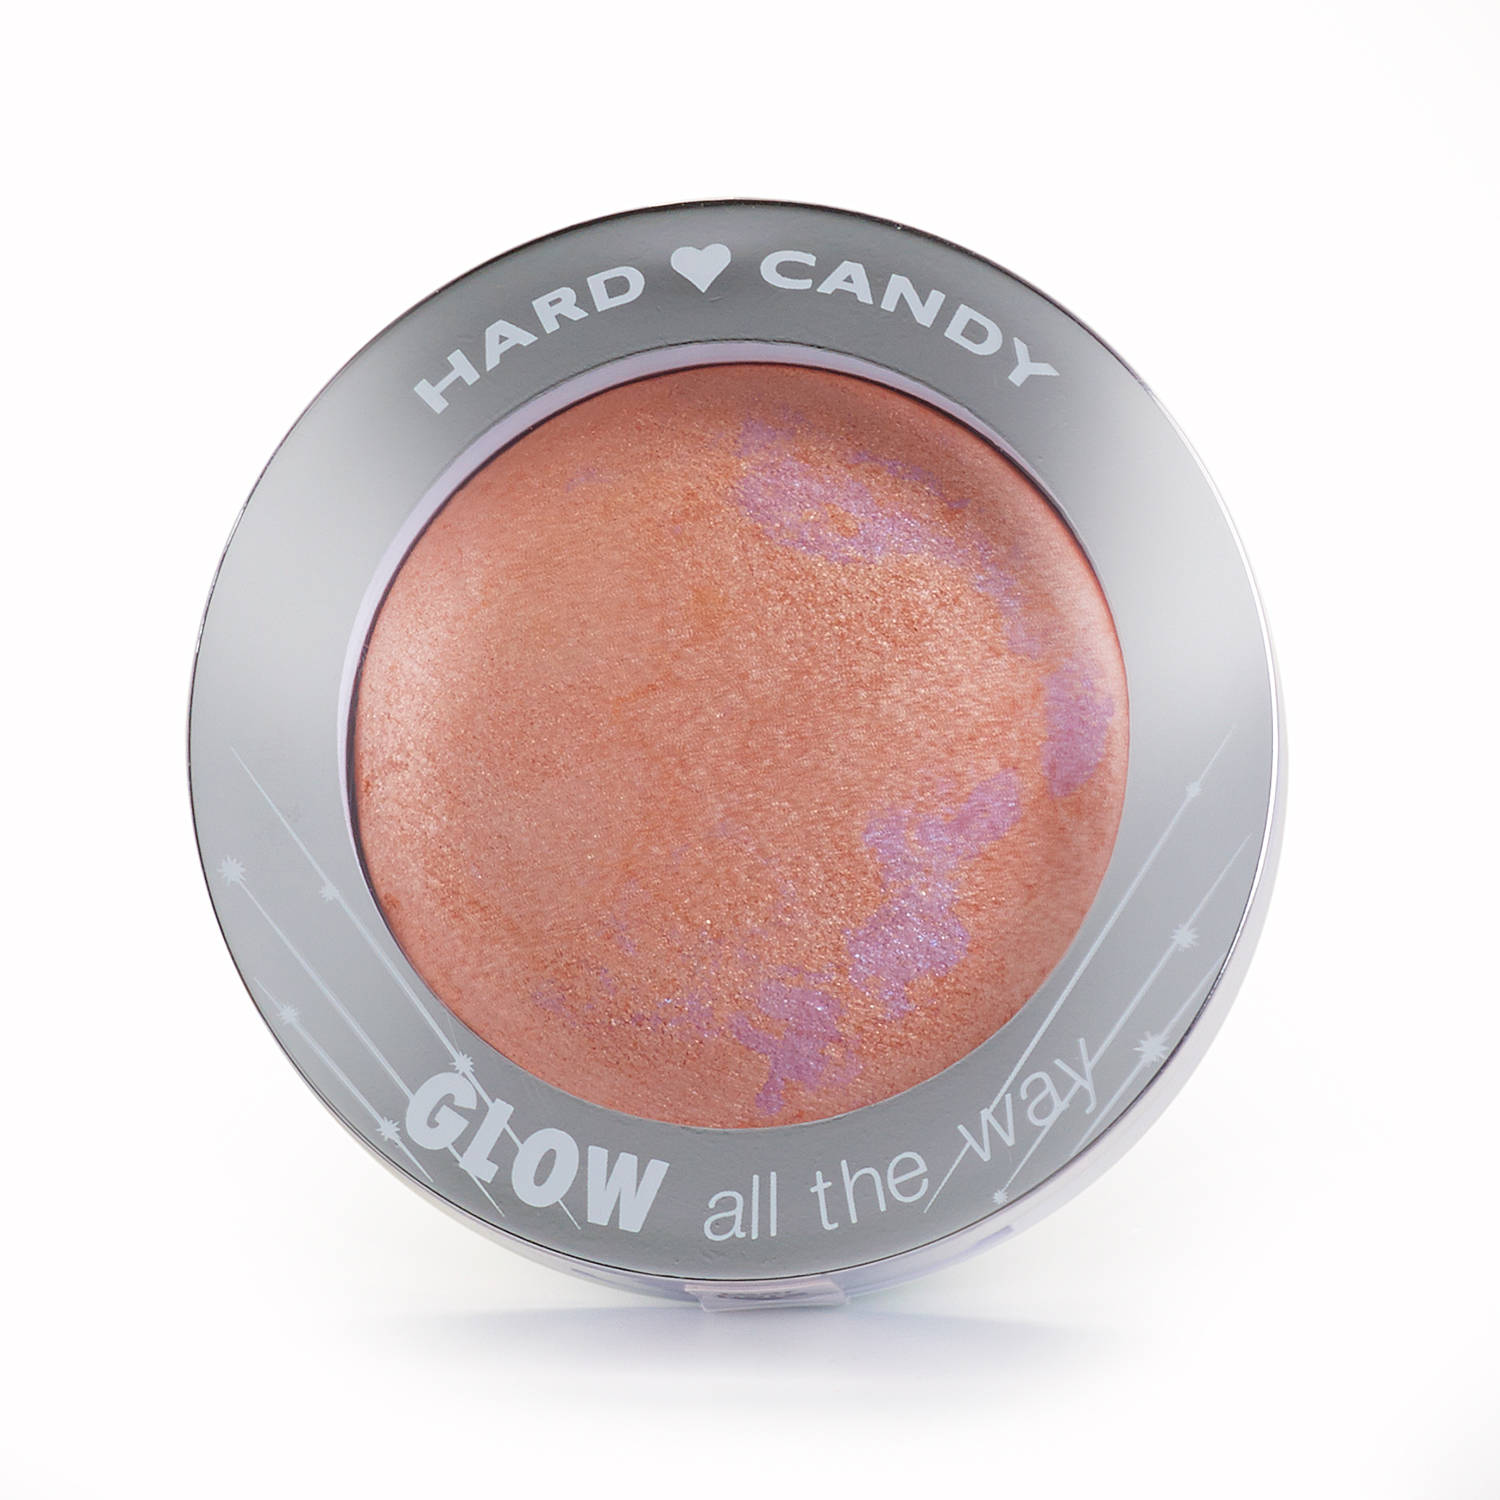 Hard Candy Blush Crush Baked Blush, Honeymoon Peach